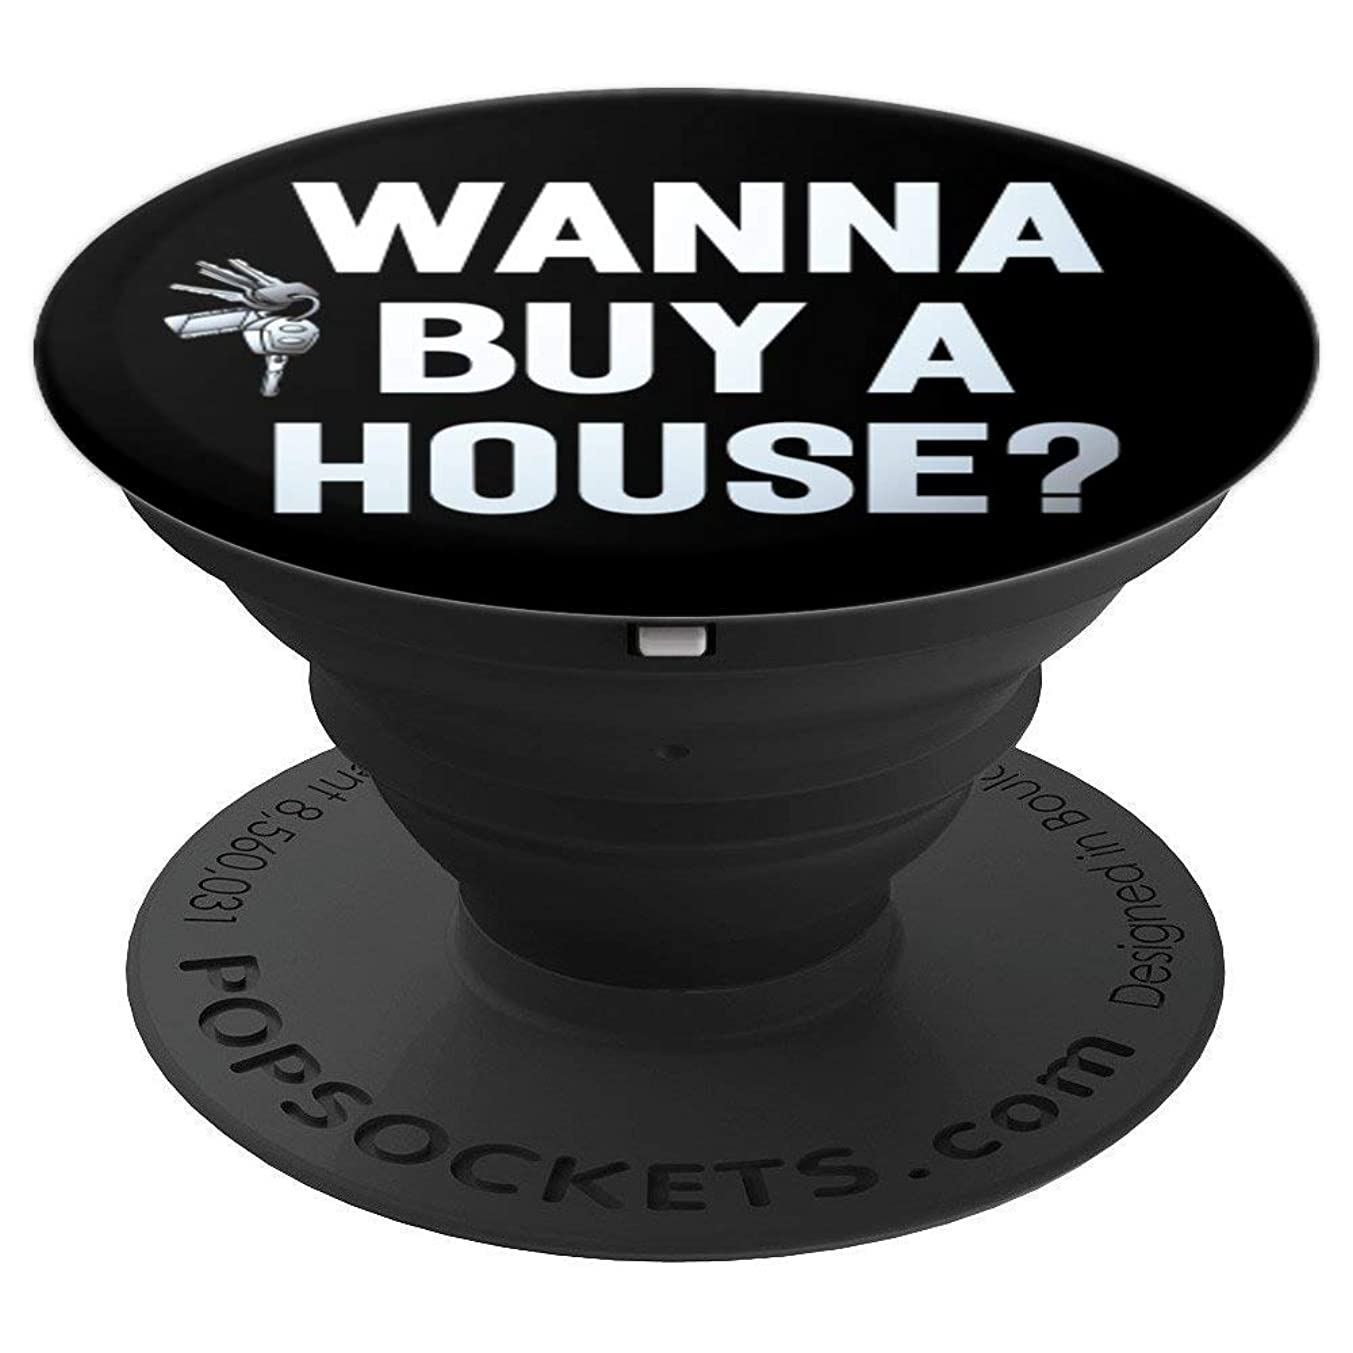 Wanna Buy A House Real Estate Agent Funny Gift Pop Socket - PopSockets Grip and Stand for Phones and Tablets